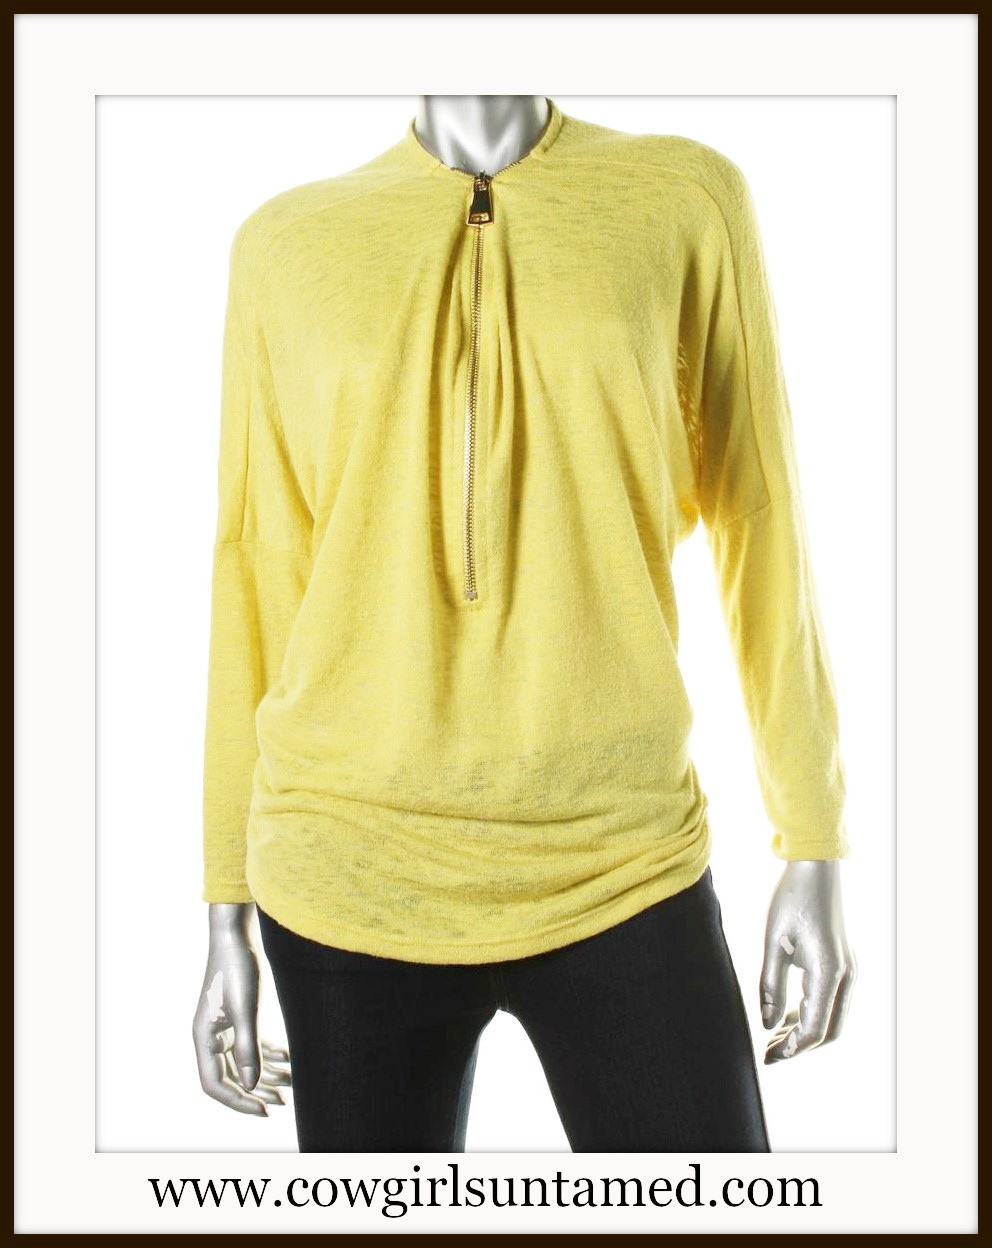 ALFANI SWEATER Yellow Burnout Zipper Neckline Long Sleeve Designer Sweater